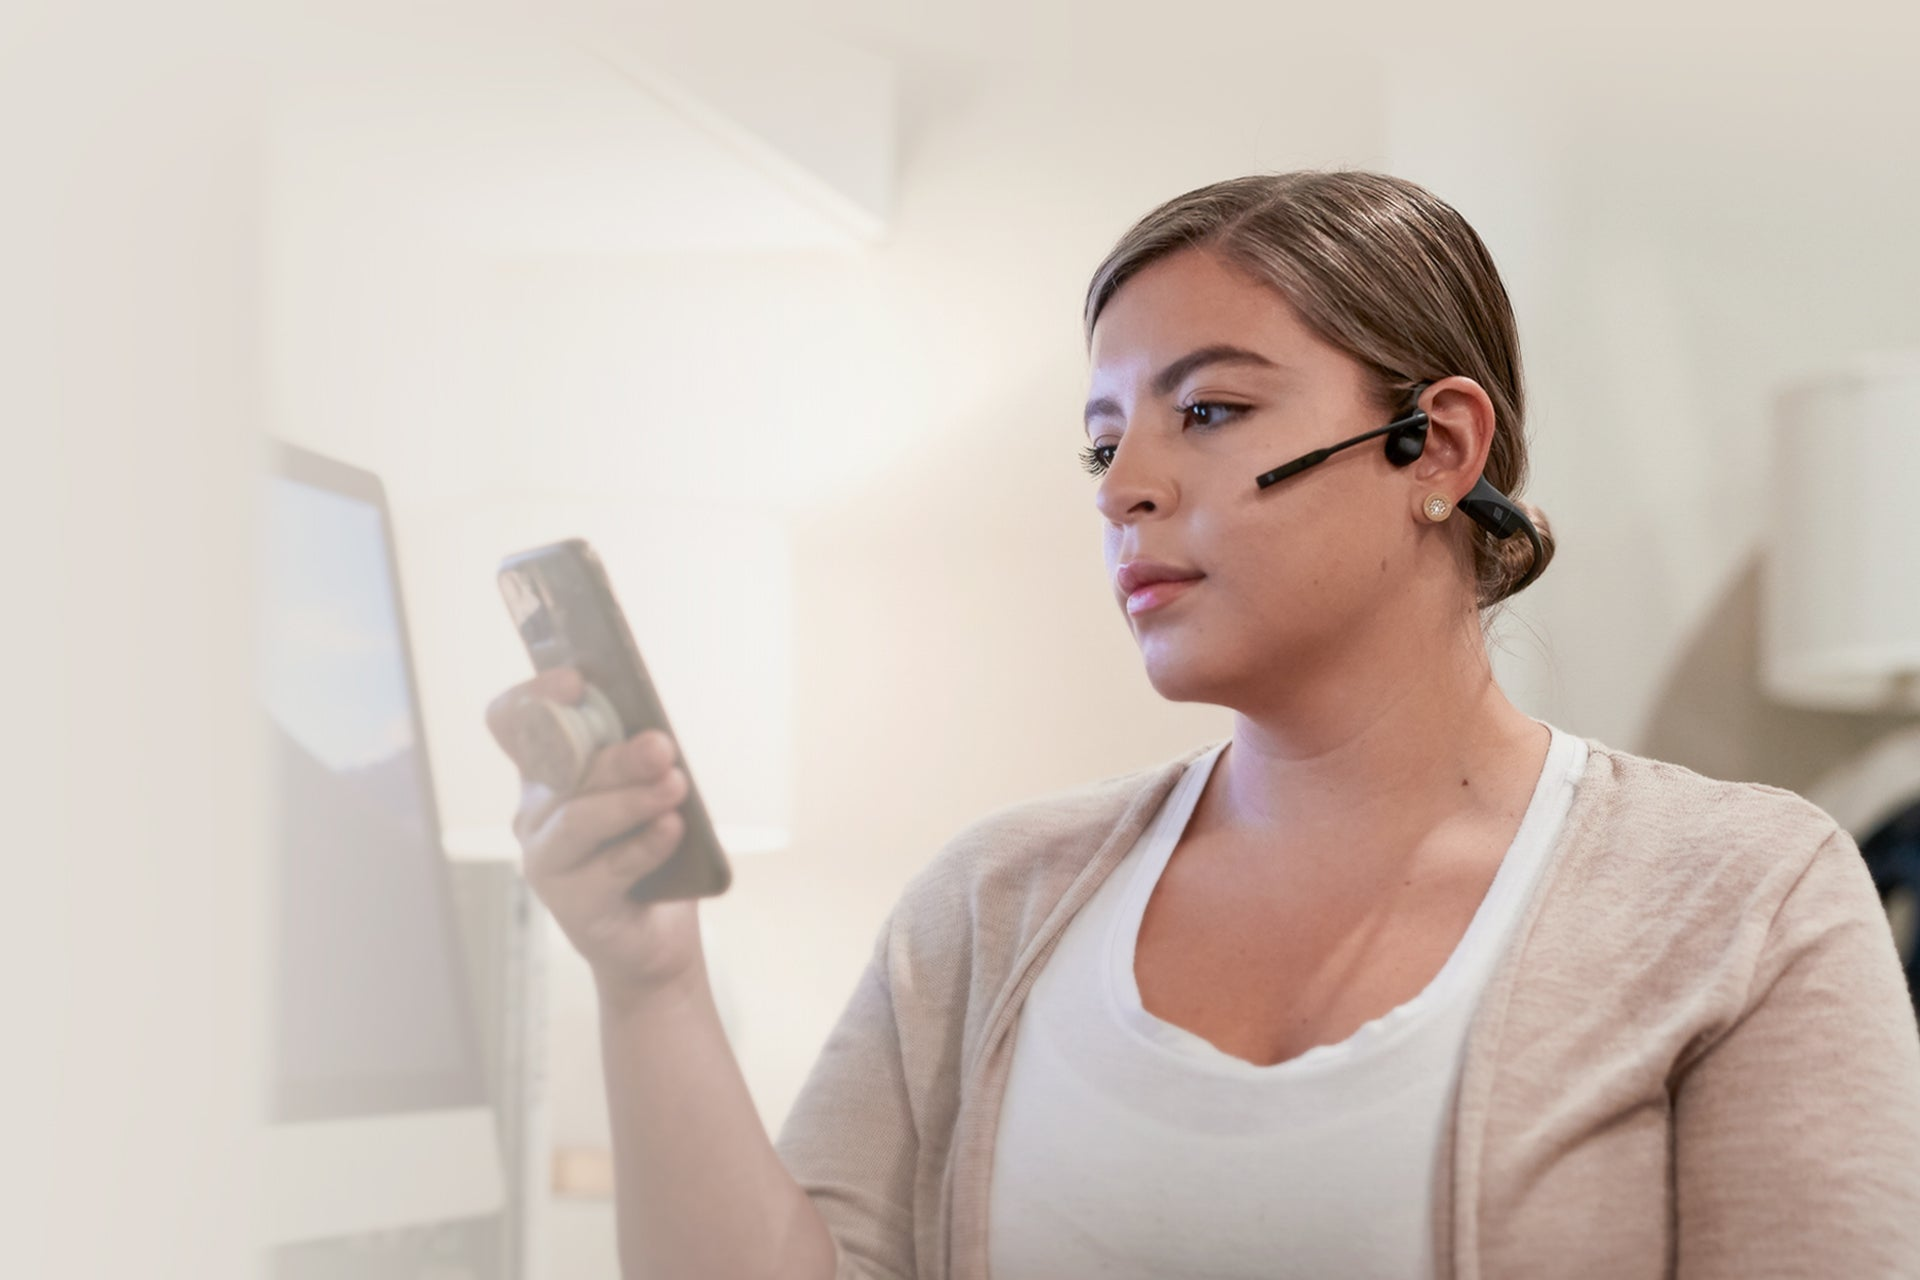 Woman using mobile phone while wearing AfterShokz OpenComm headset